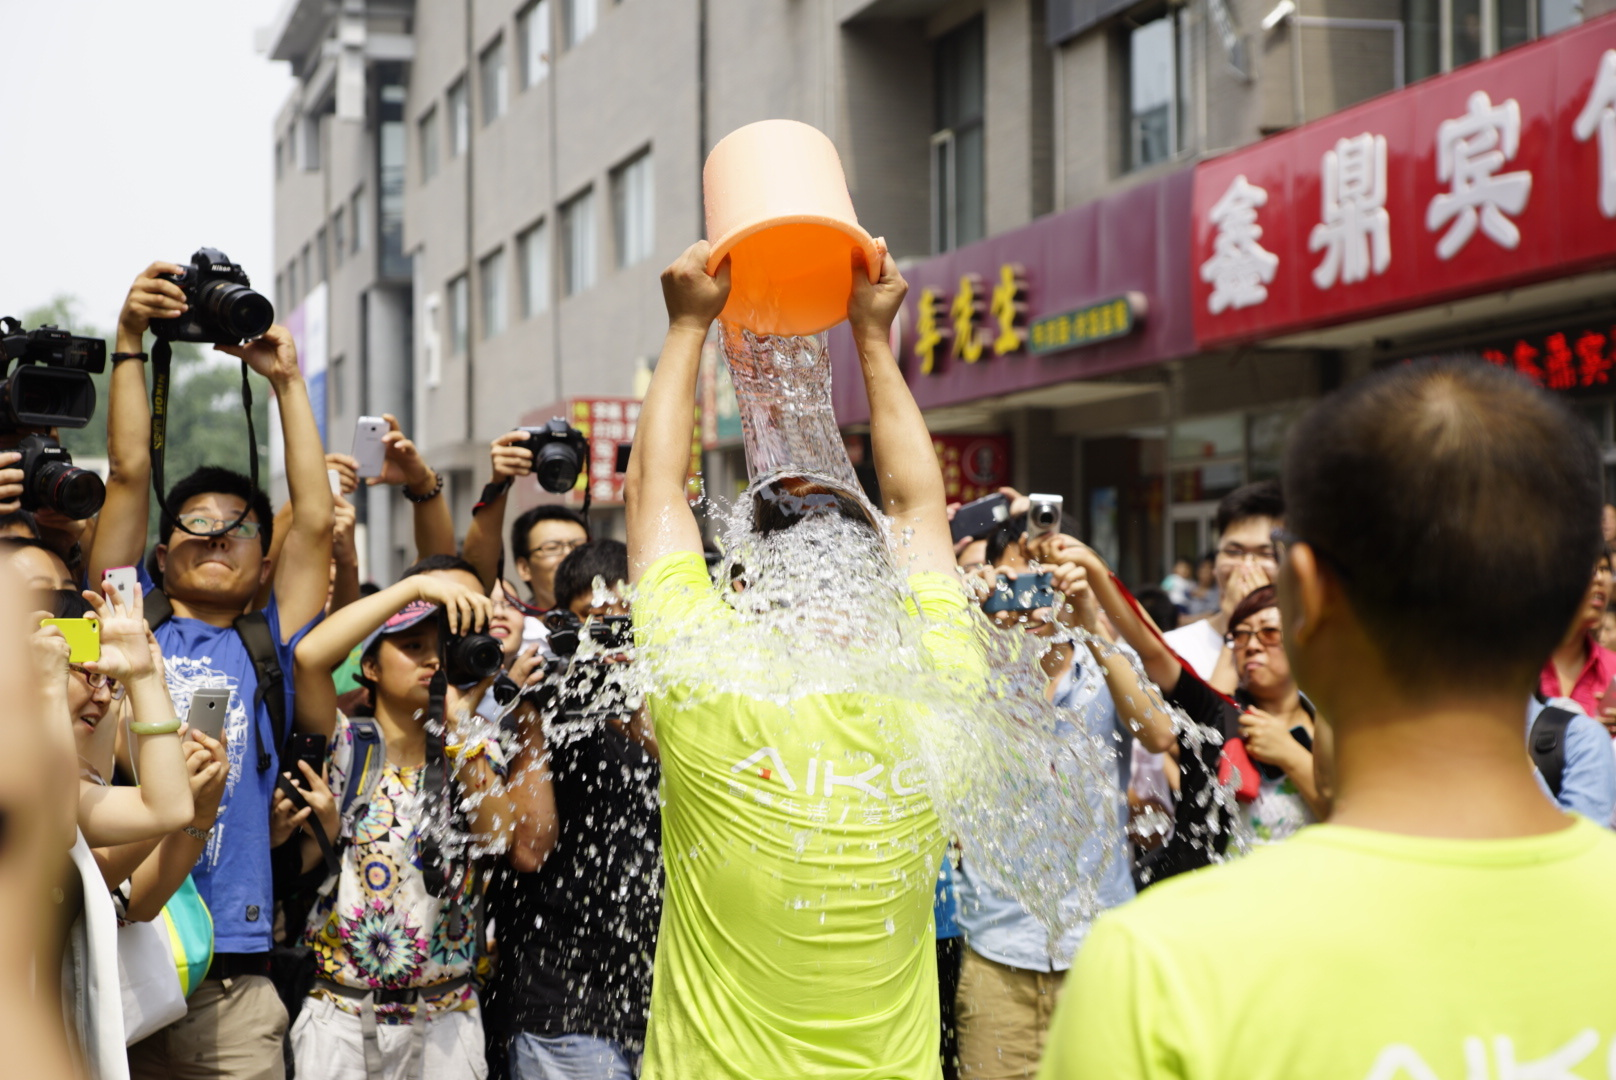 A group of people participate in the ALS Ice Bucket Challenge at  on August 21, 2014 in Beijing, China.